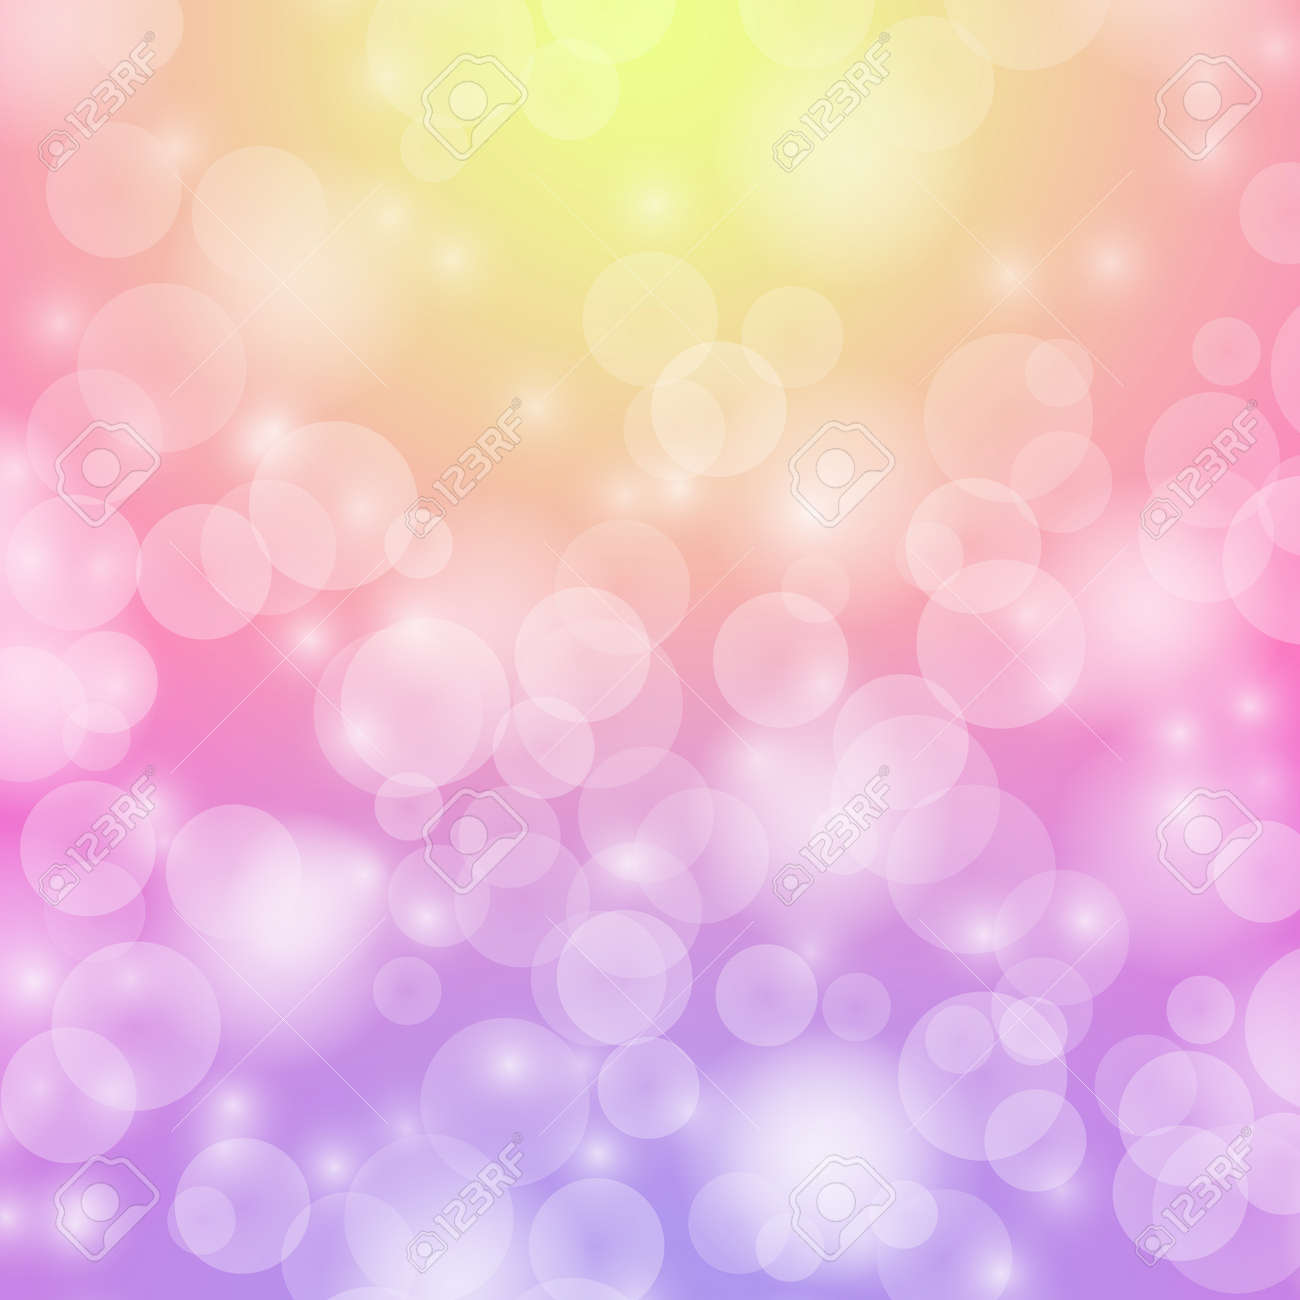 Abstract background with circles  Light effects  The gentle tone